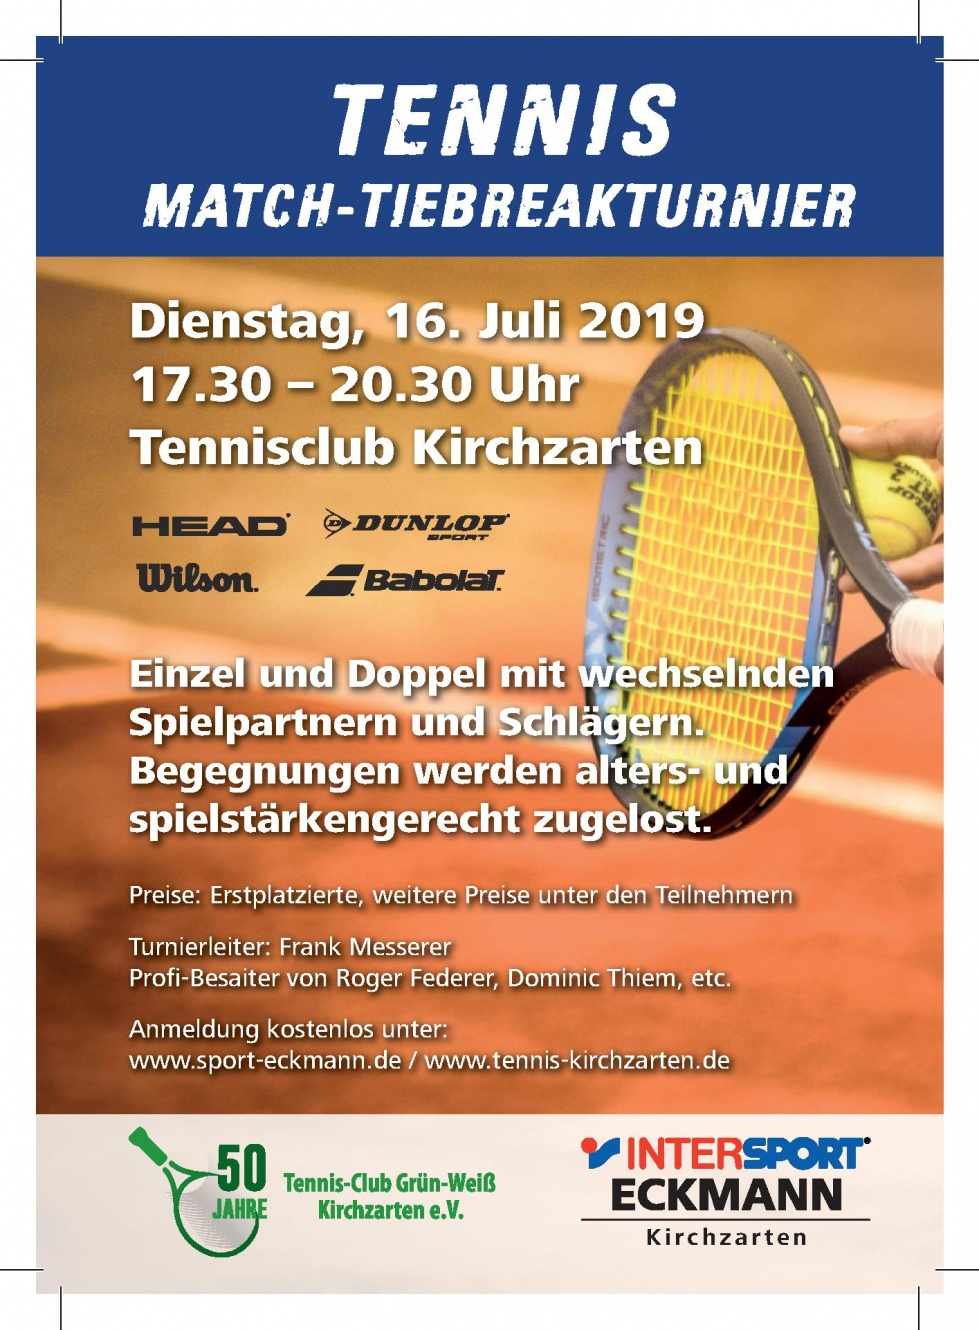 Match-Tiebreak-Turnier mit Frank Messerer am 16. Juli